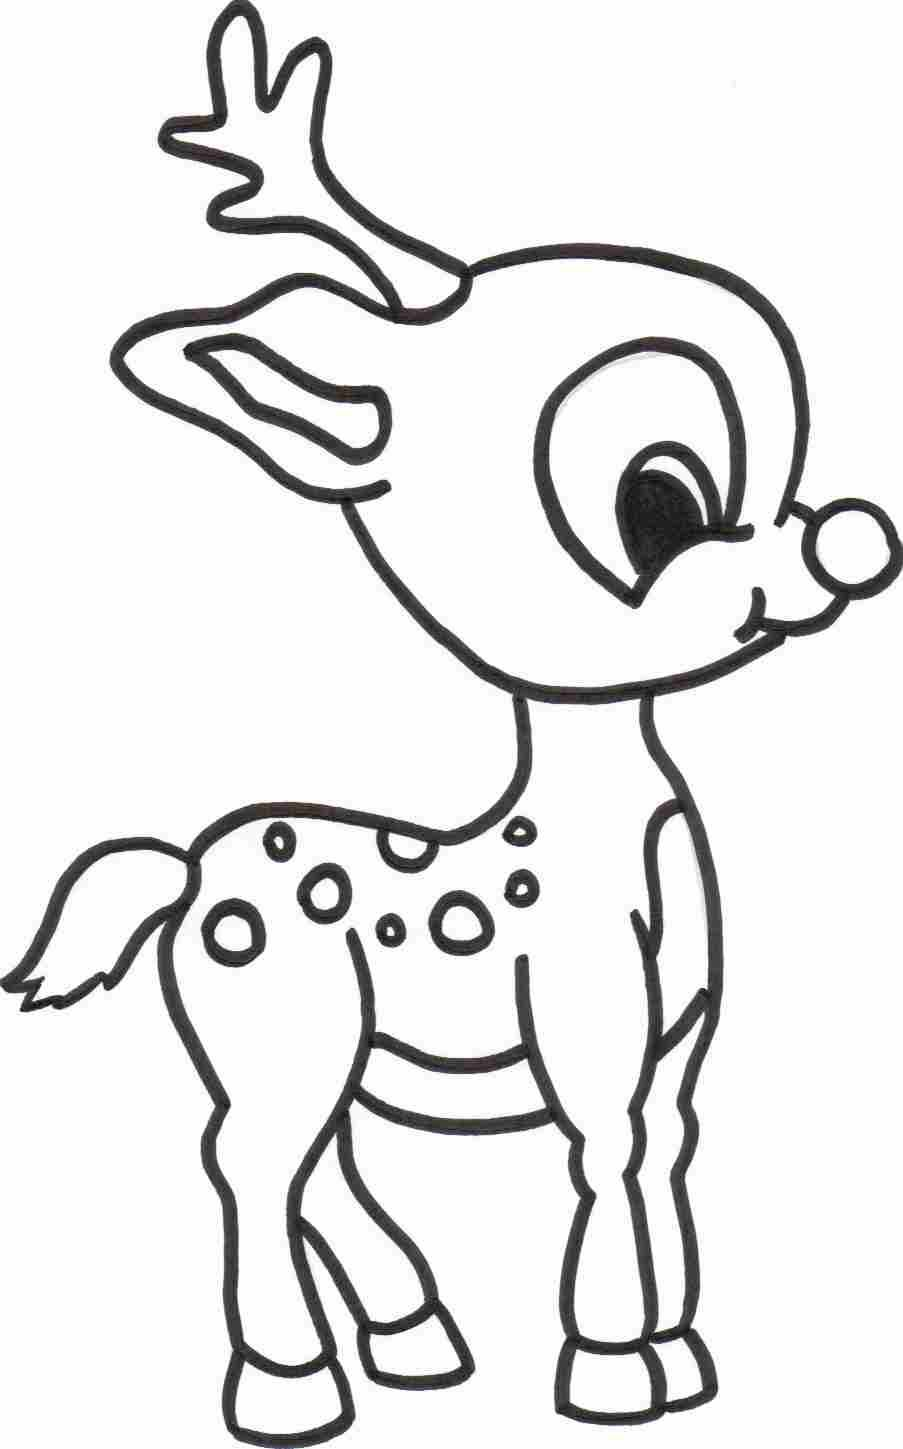 Free Disney Christmas Colouring Pages With Printable Reindeer Coloring For Kids Sketch Pinterest